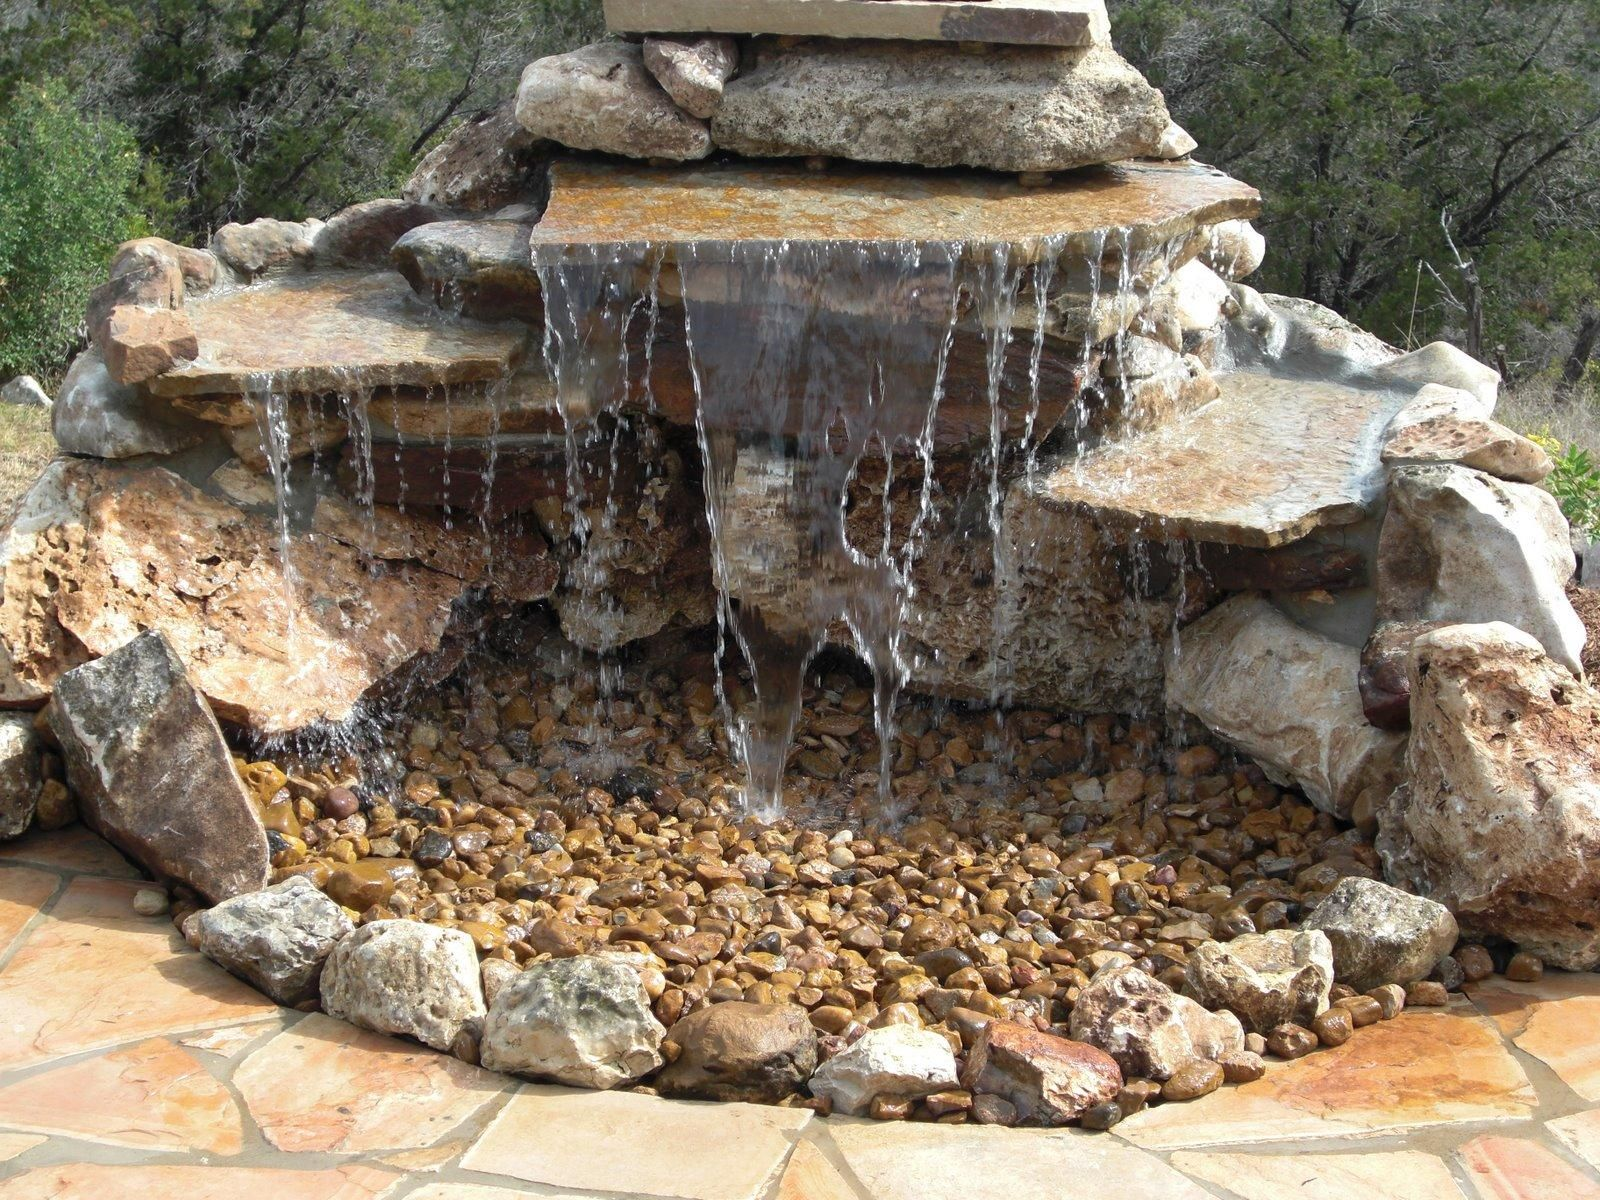 DIY Garden Fountain : DIY Pond Less Waterfall, This Would Make A Great Bird  Bath Too For Hummingbirds